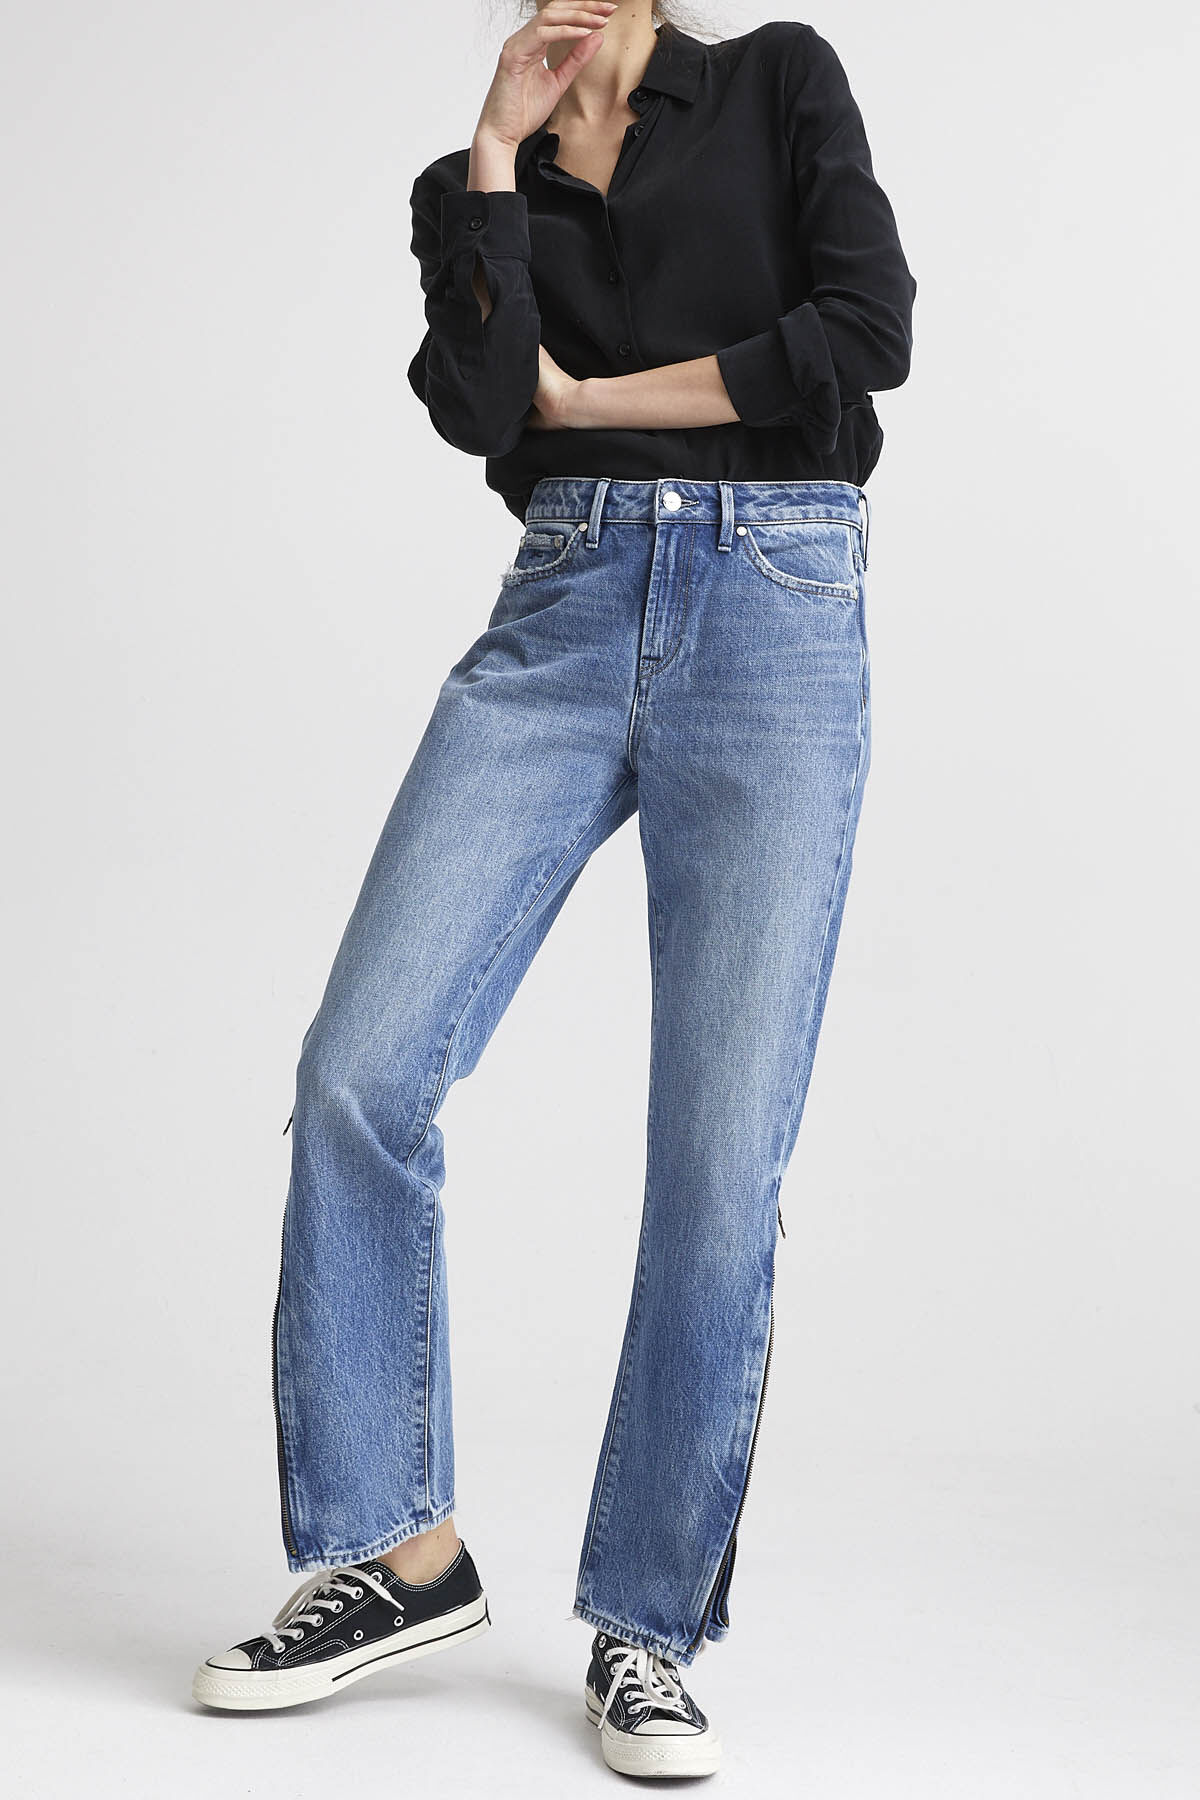 HEIDI ZIP Zipper Detail Denim - Straight Fit